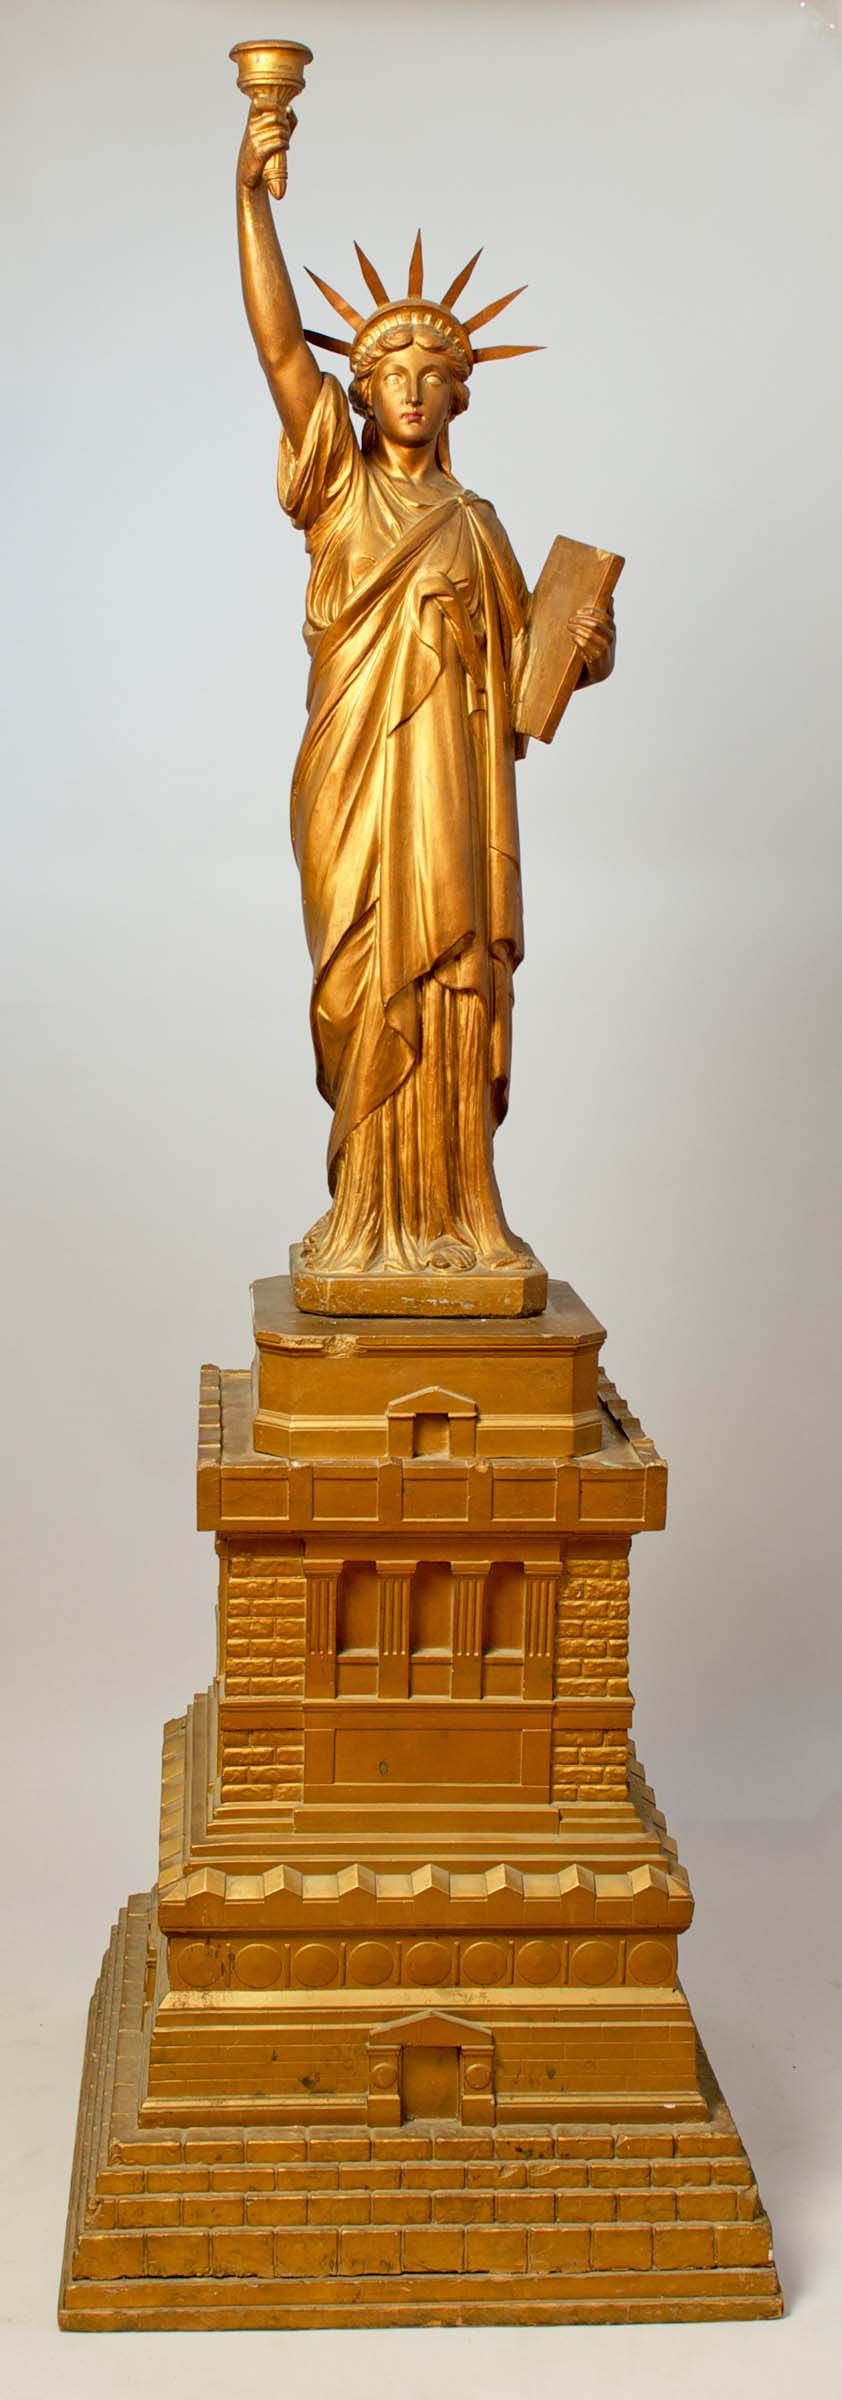 Max Voigt, Philadelphia, Statue of Liberty, c. 1918, cast plaster and paint, 70h x 24w x 24d in. (2 parts)